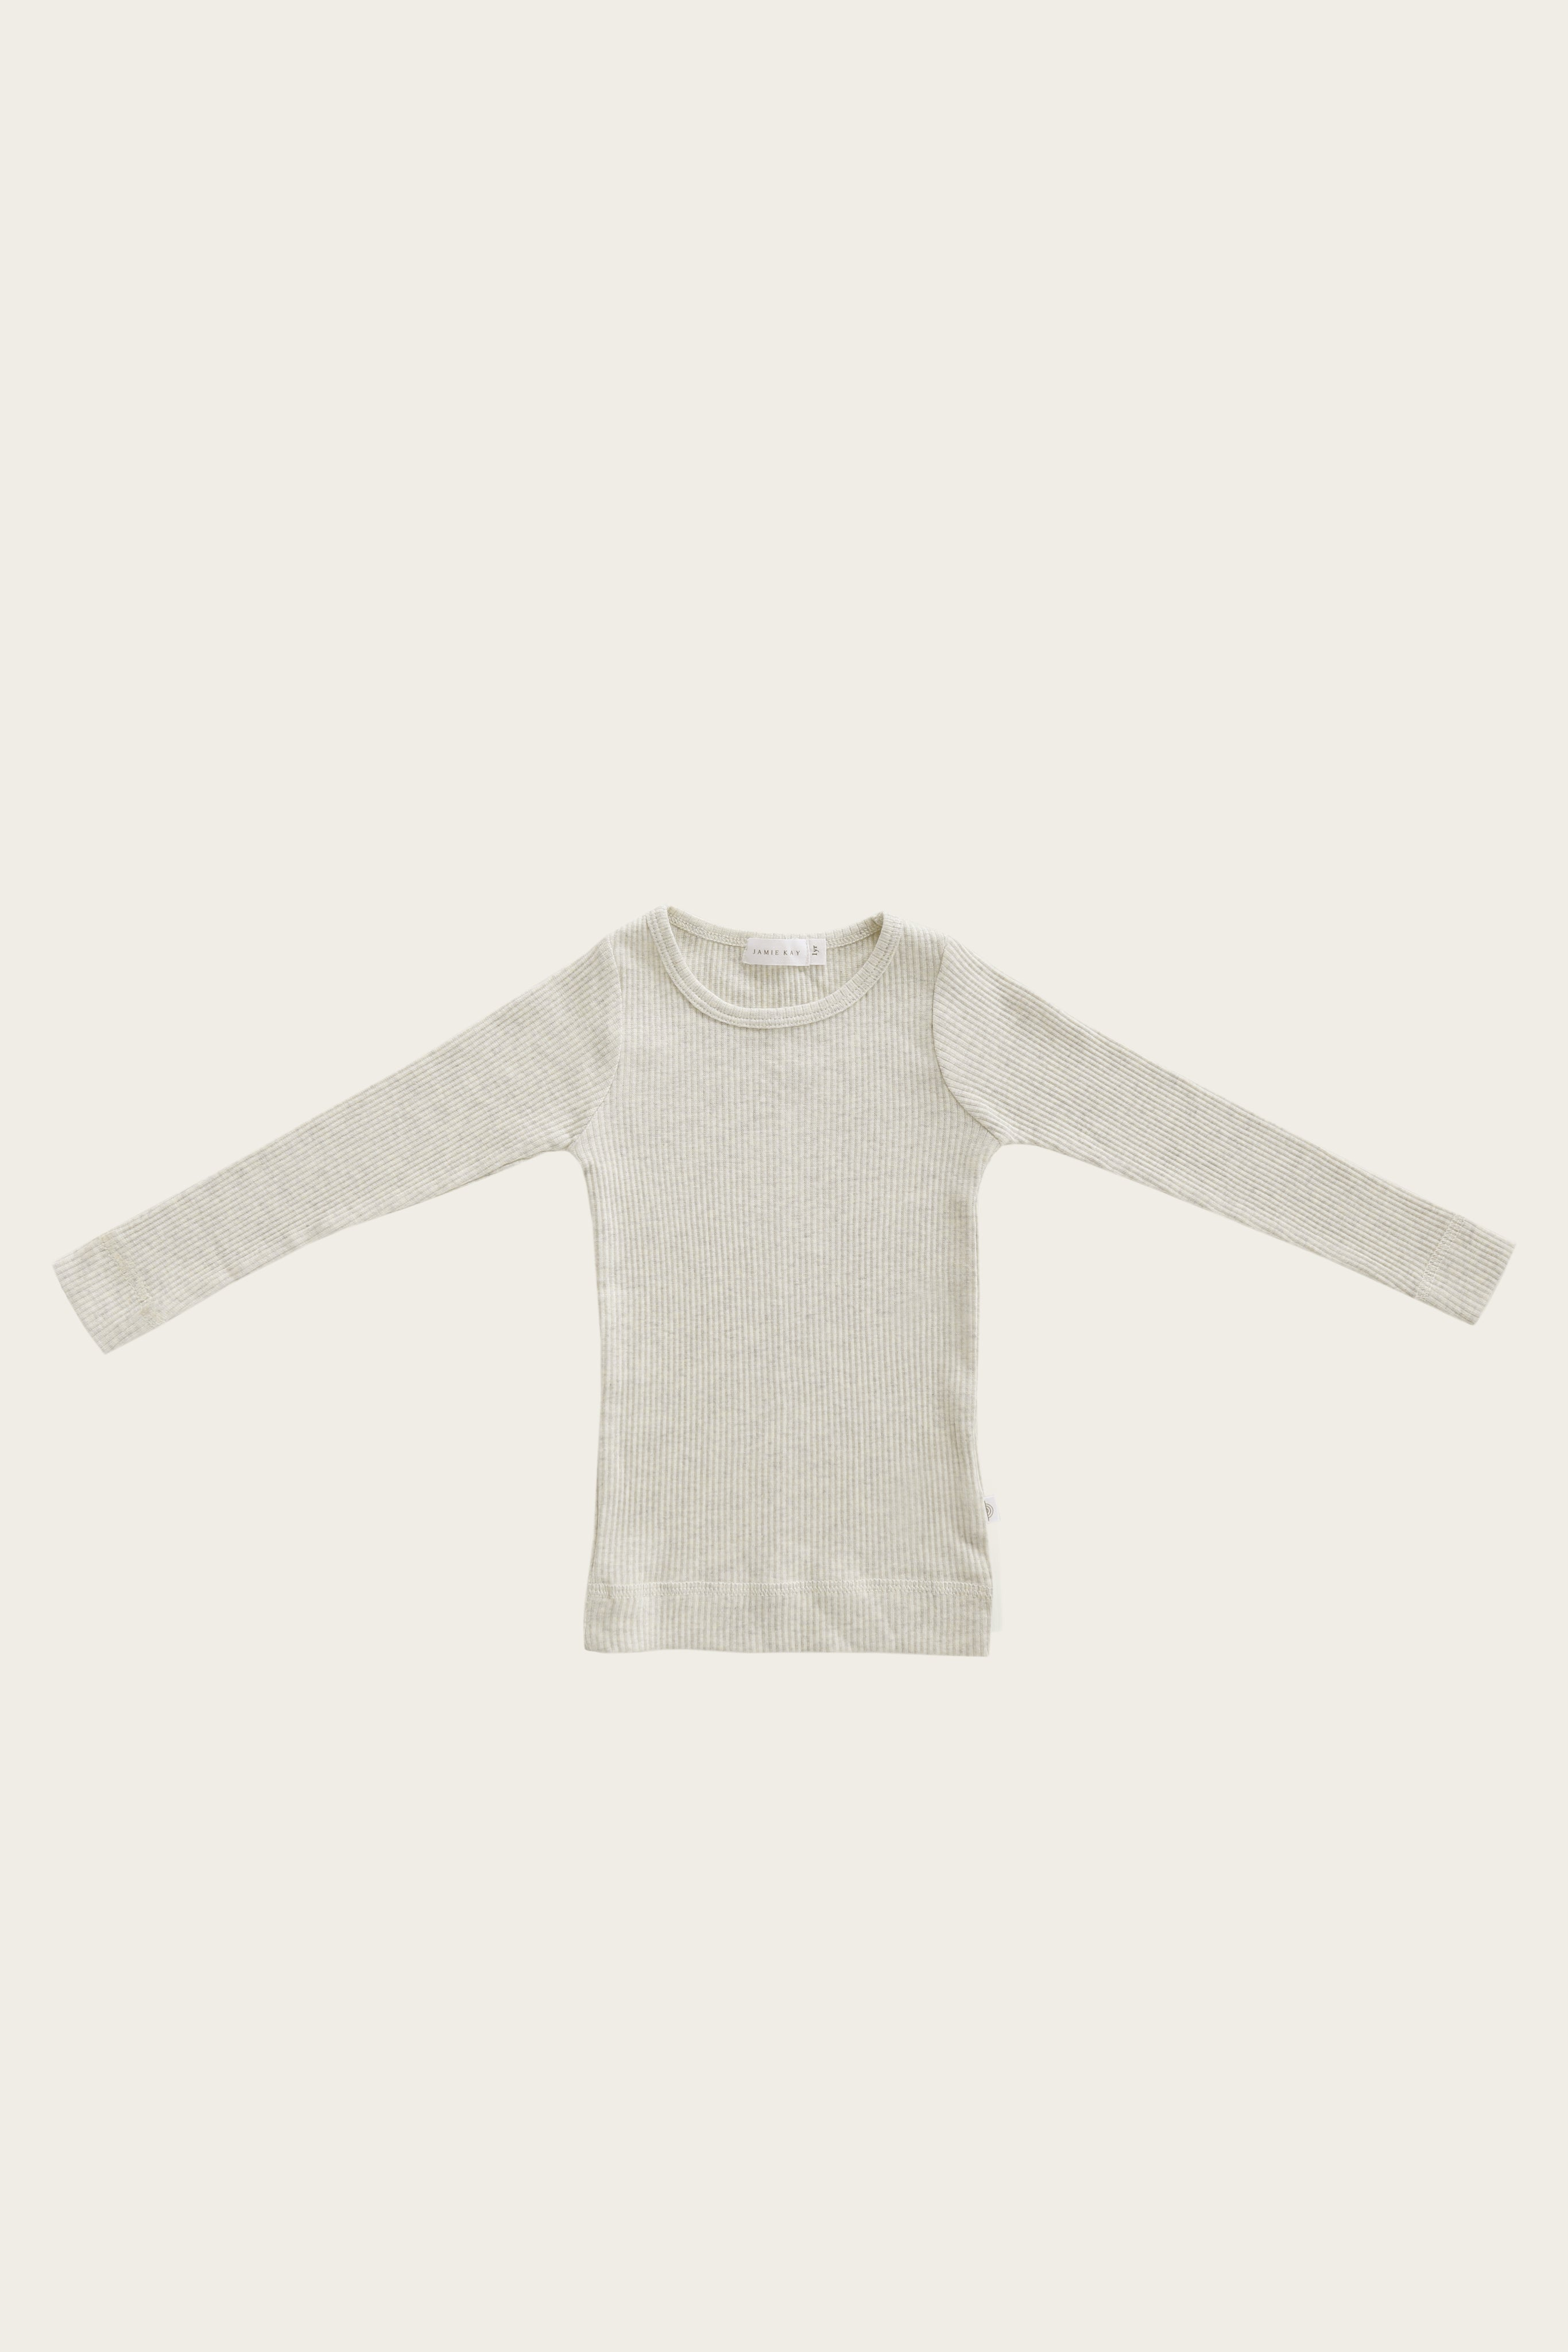 Organic Essential Long Sleeve Top - Oatmeal Marle